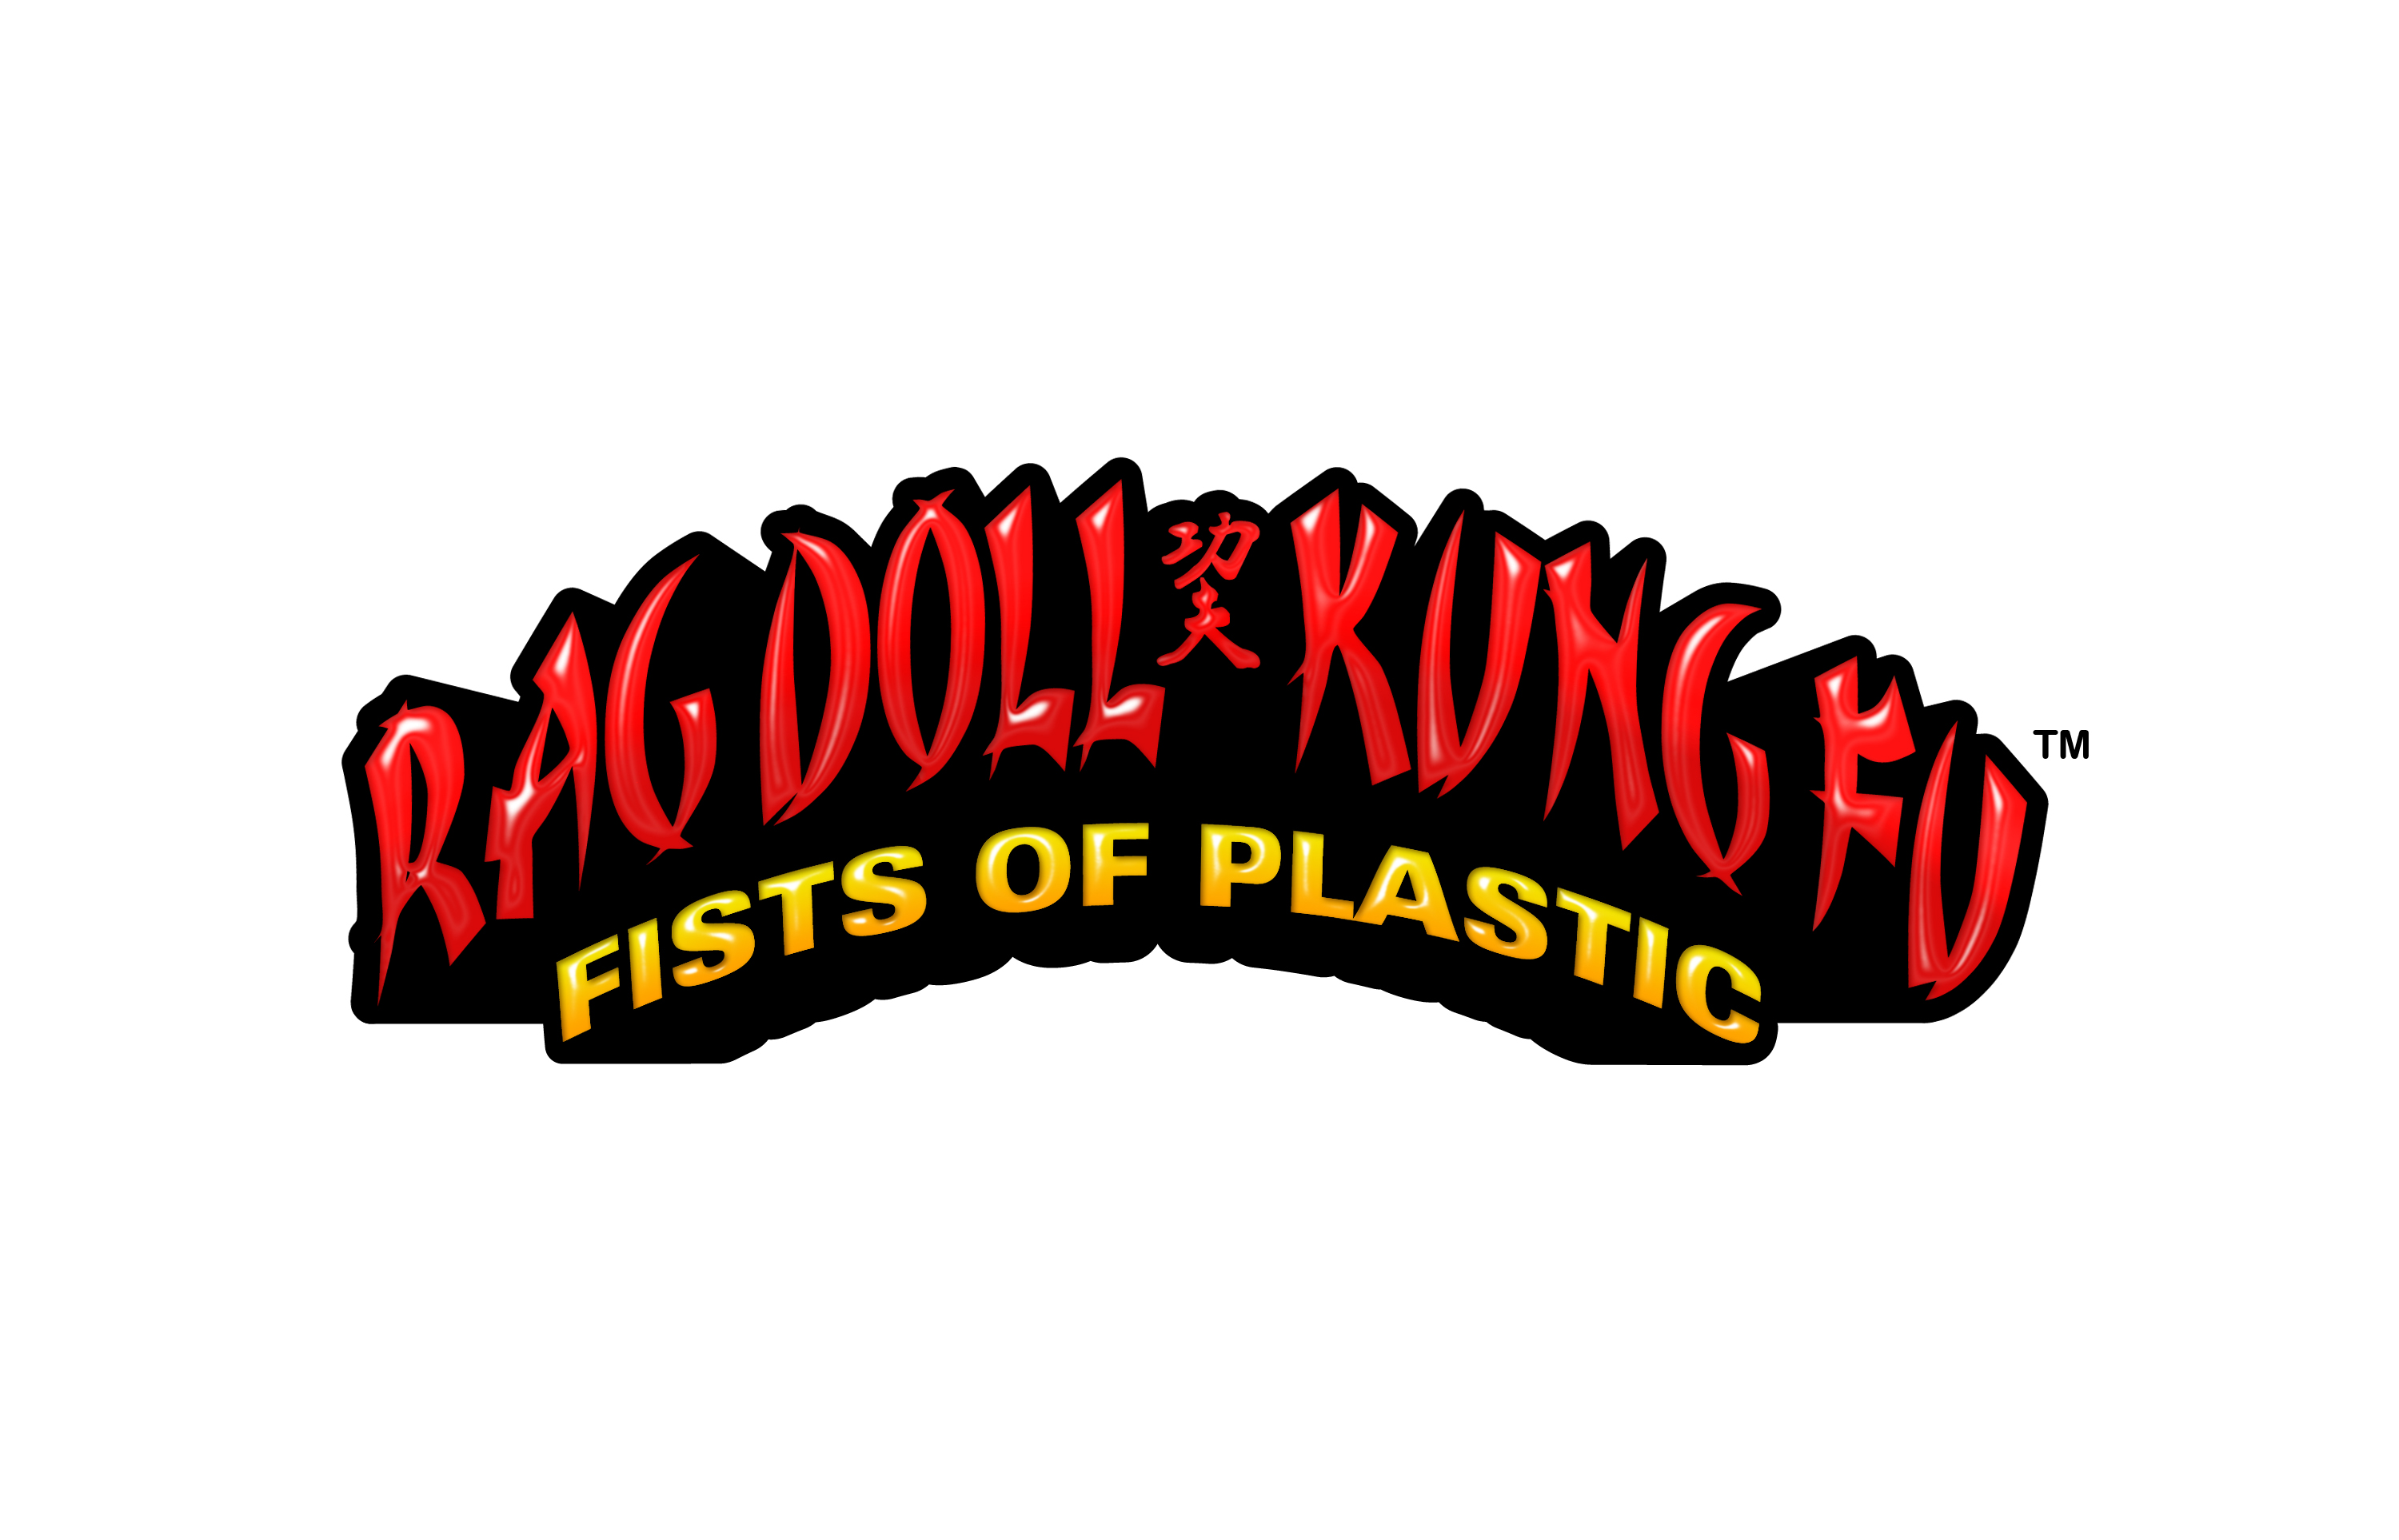 plastic fist kung fu of